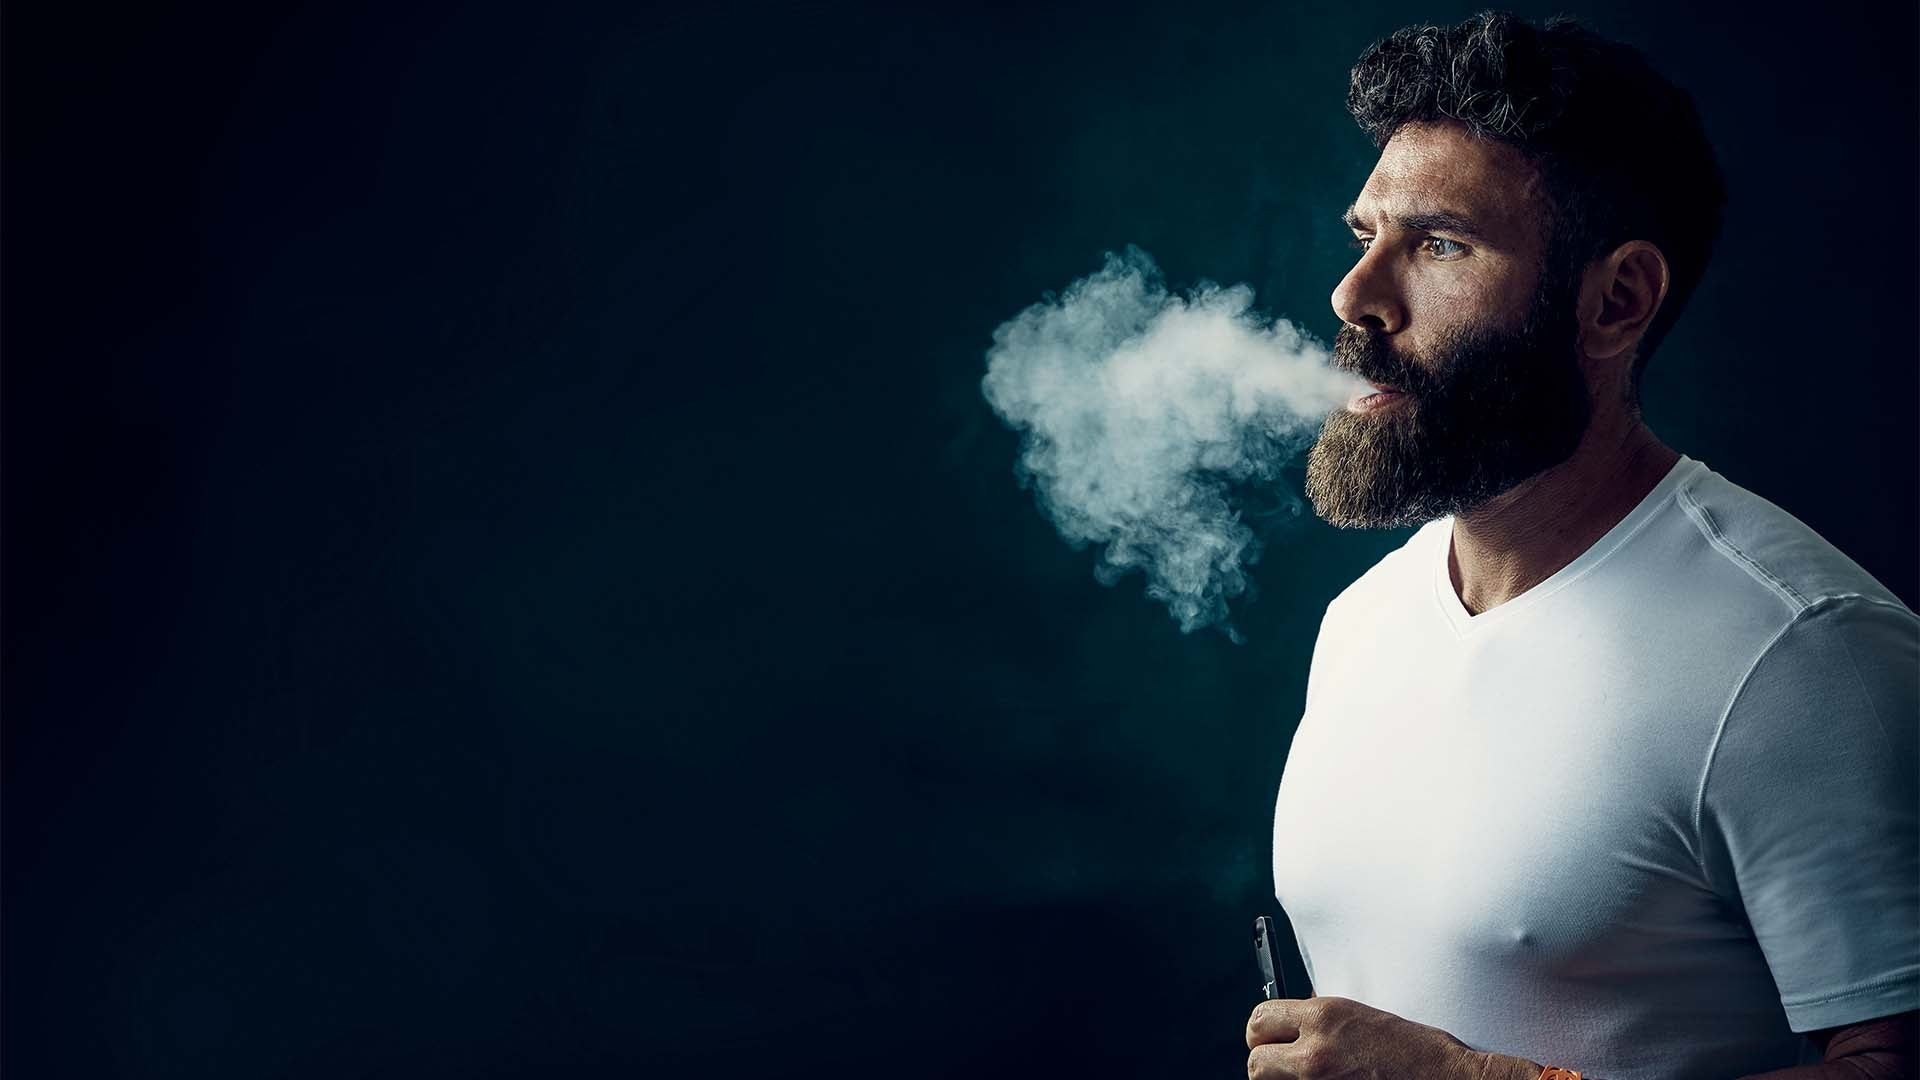 Dan Bilzerian's  ignite cbd brand blows $50 million ON models, flights, parties & yachts in 2019 - Wee Hemp Blog - Wee Hemp - The Culture Blog - Cannabis & CBD News - The Wee Hemp Company | Wee Hemp CBD Oil Shop | Scotland's multi award winning CBD